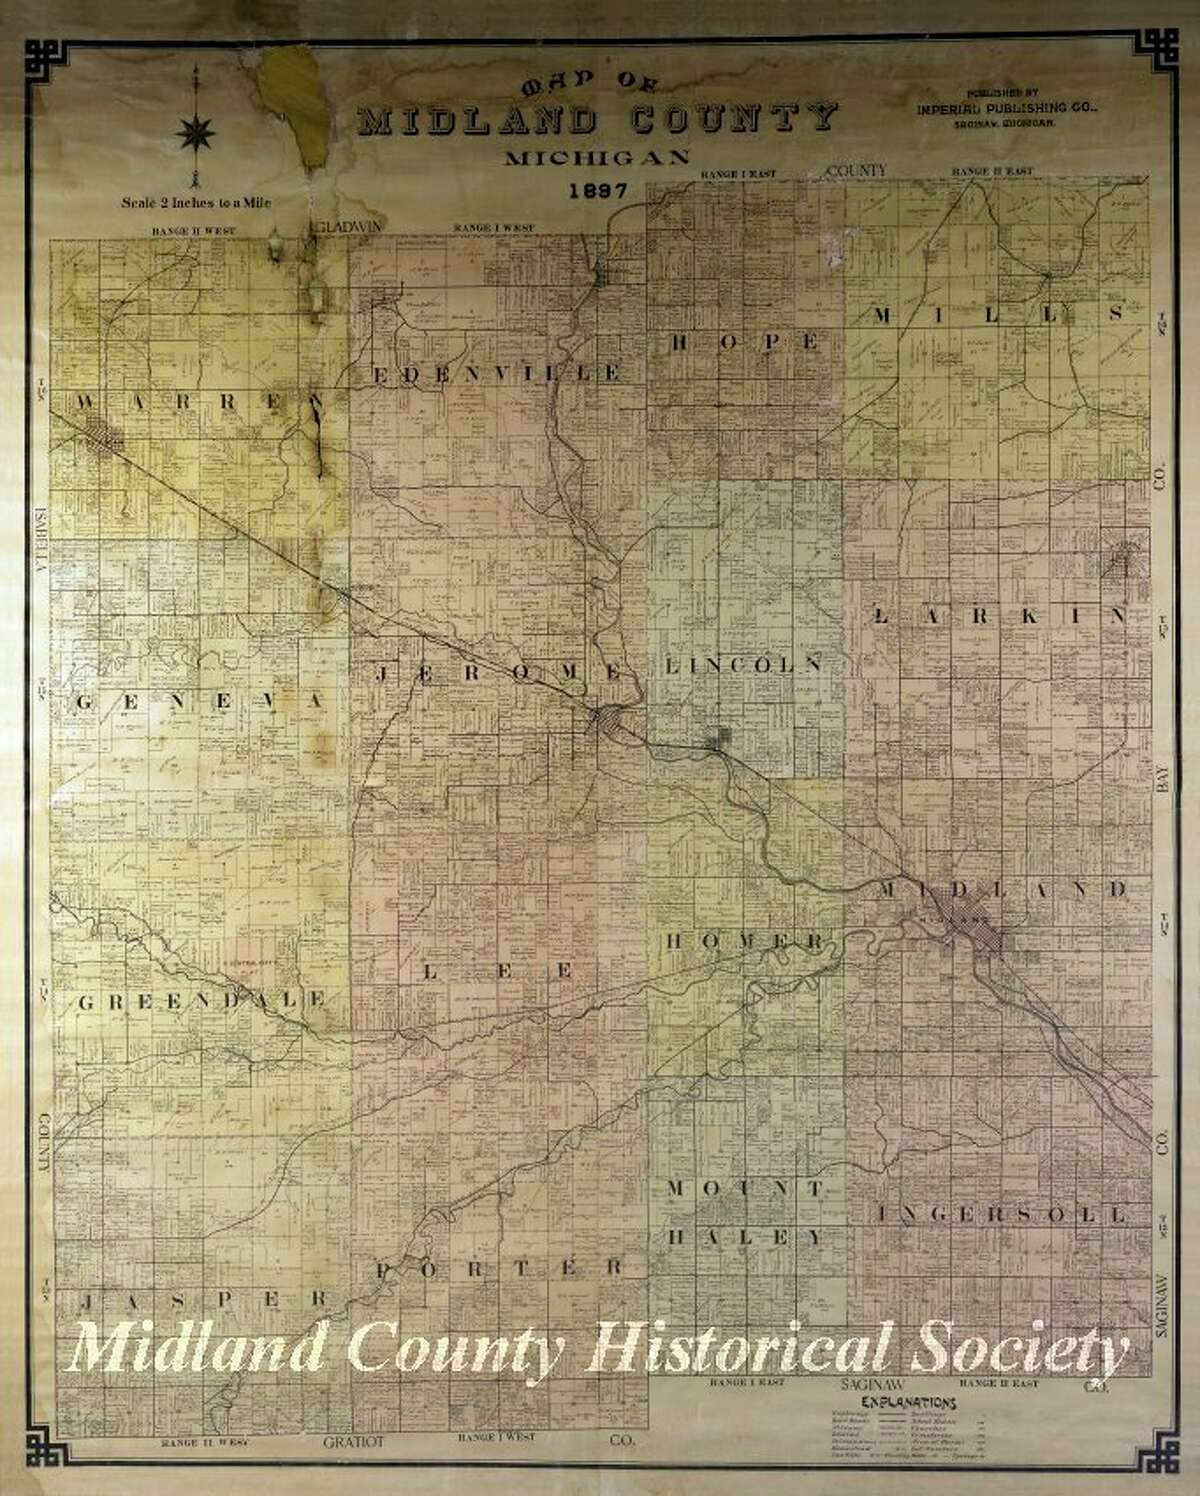 This is a plat map of Midland County from 1897. (Photo Provided)